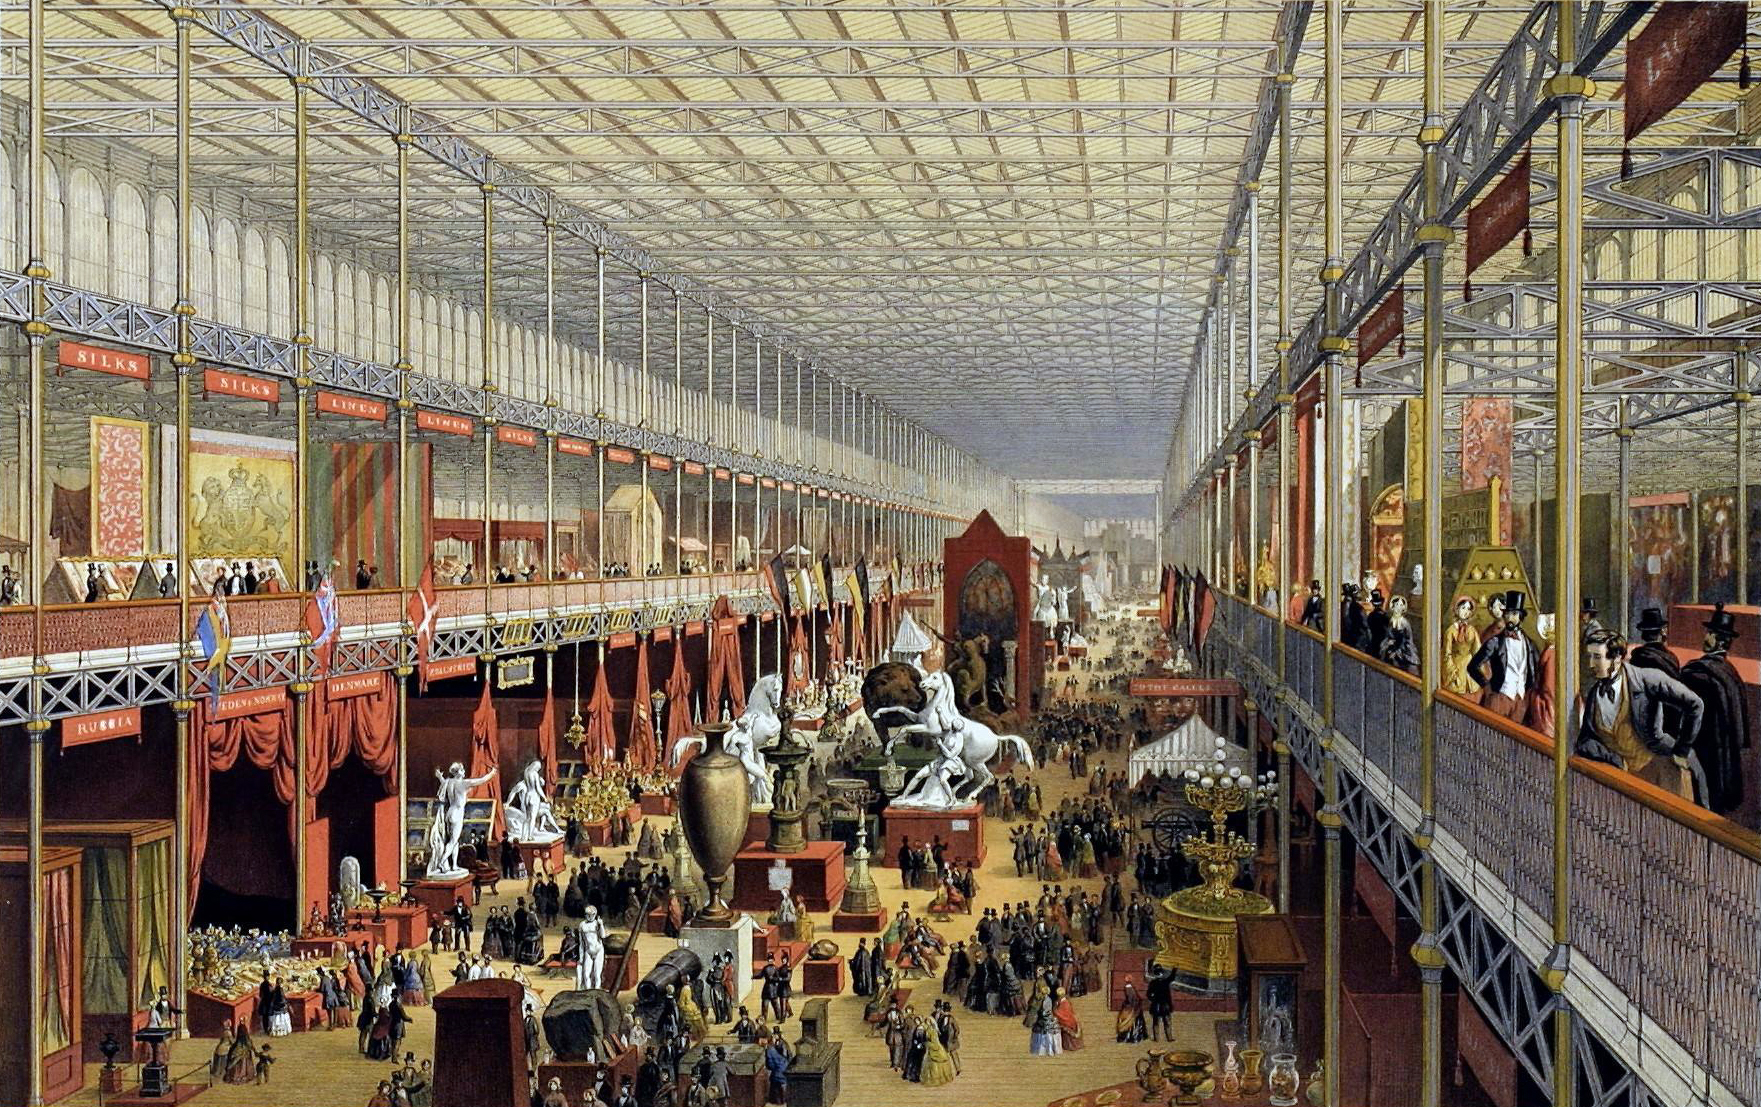 The Great Exhibition in London,The United Kingdom,was the first country in the world to industrialise.